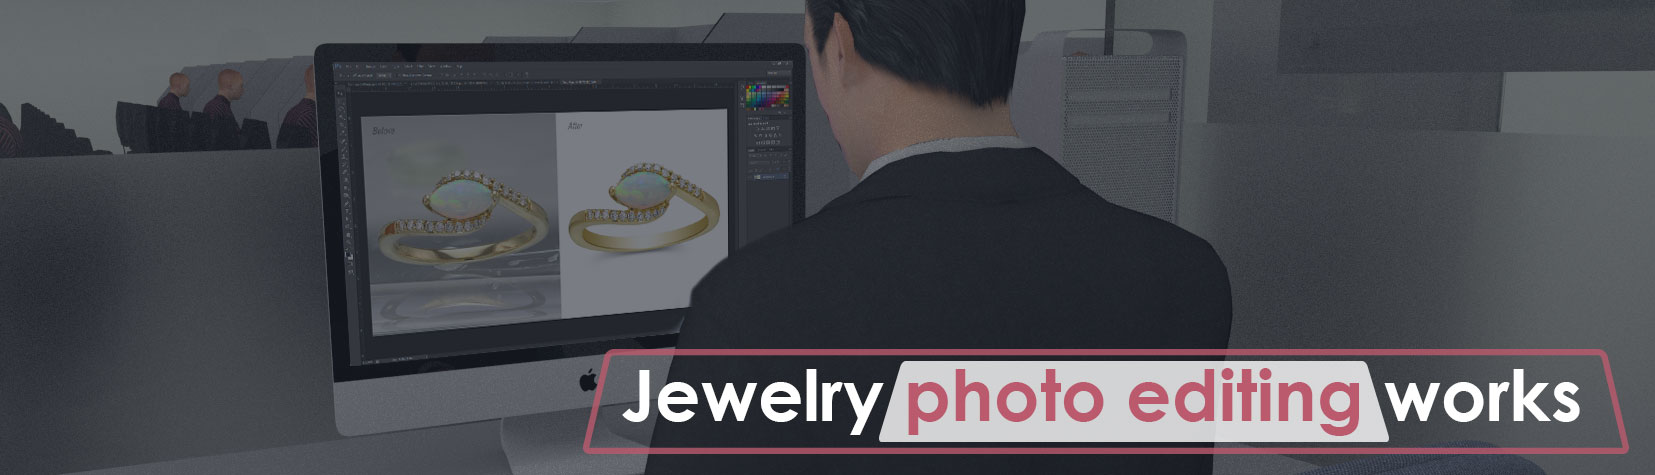 Jewelry photo editing works